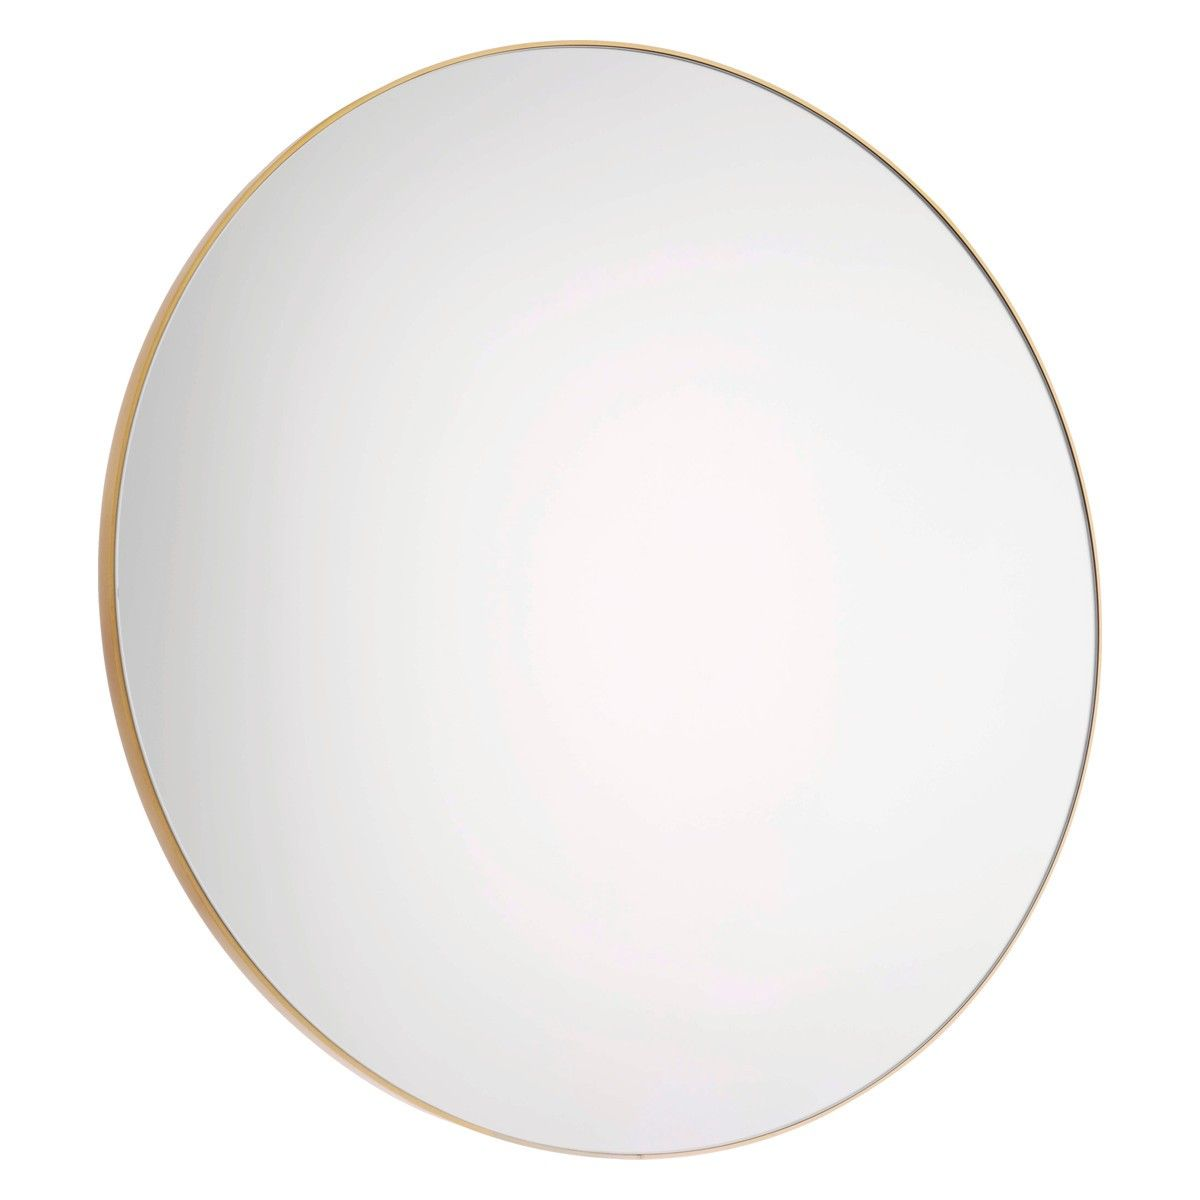 Black vanity salons vanities habitats the mirror outlets mirror - Patsy Large Round Gold Wall Mirror D82cm